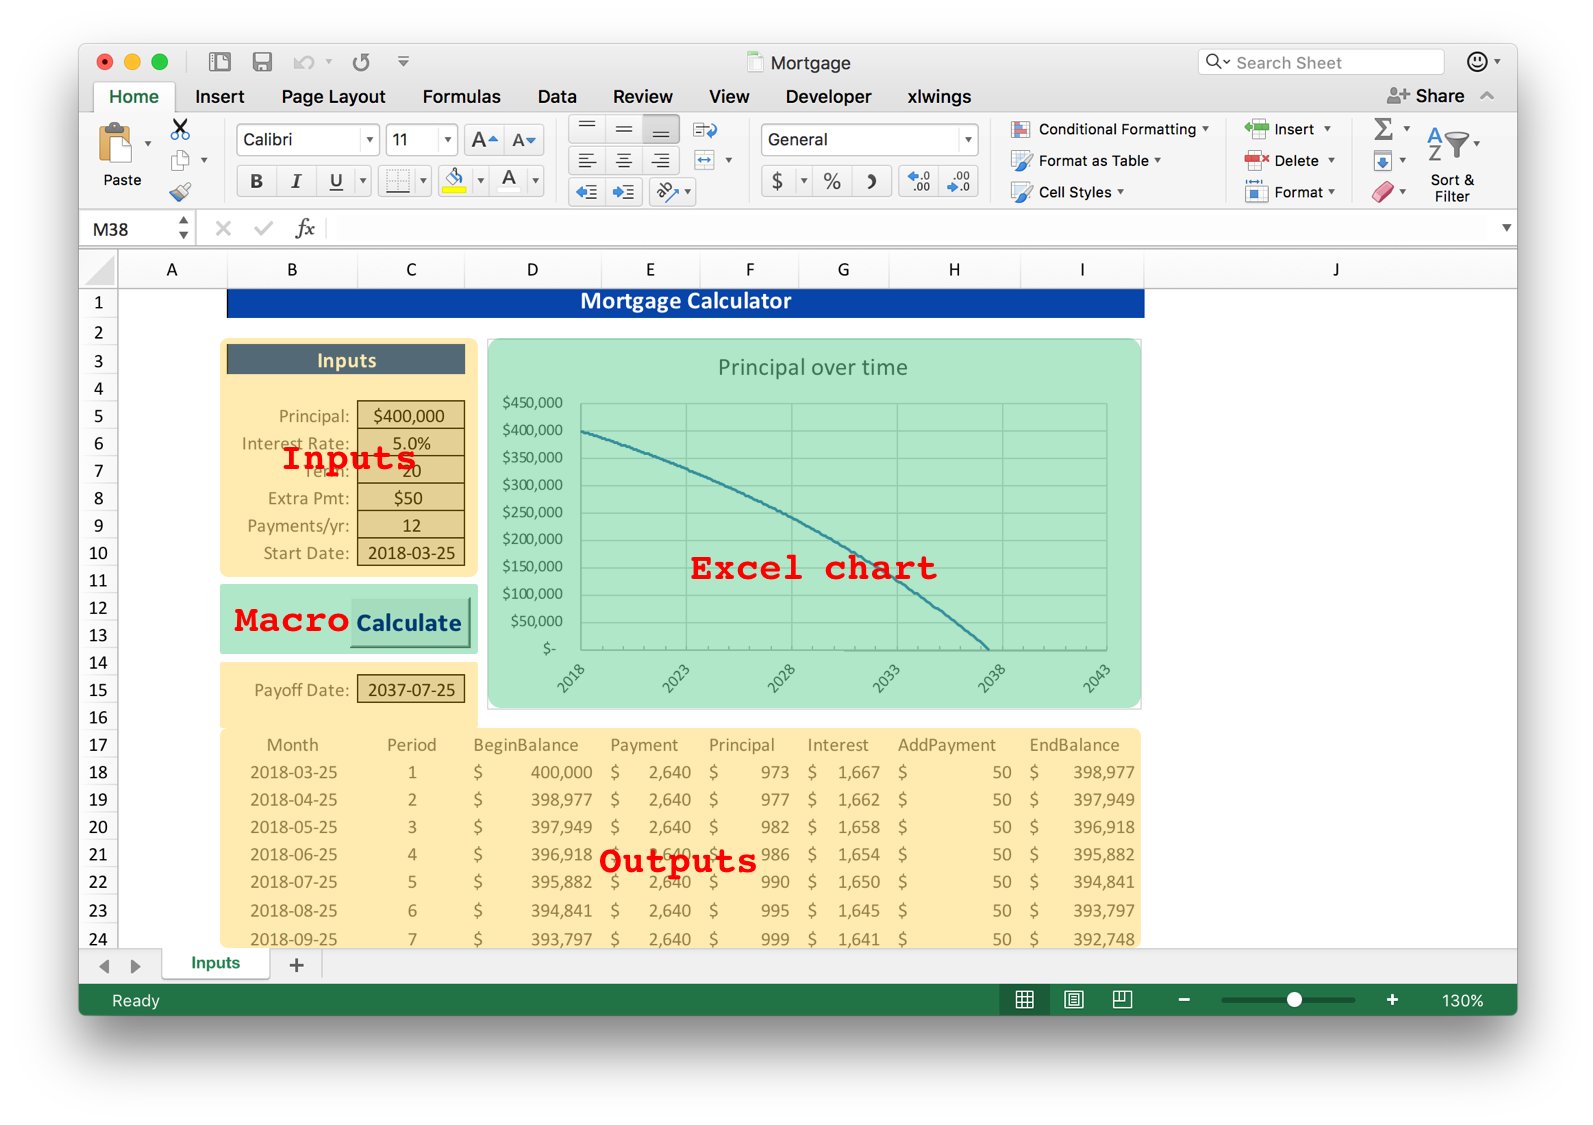 xlwings: Use Python and Excel to Calculate Your Mortgage | Matthew